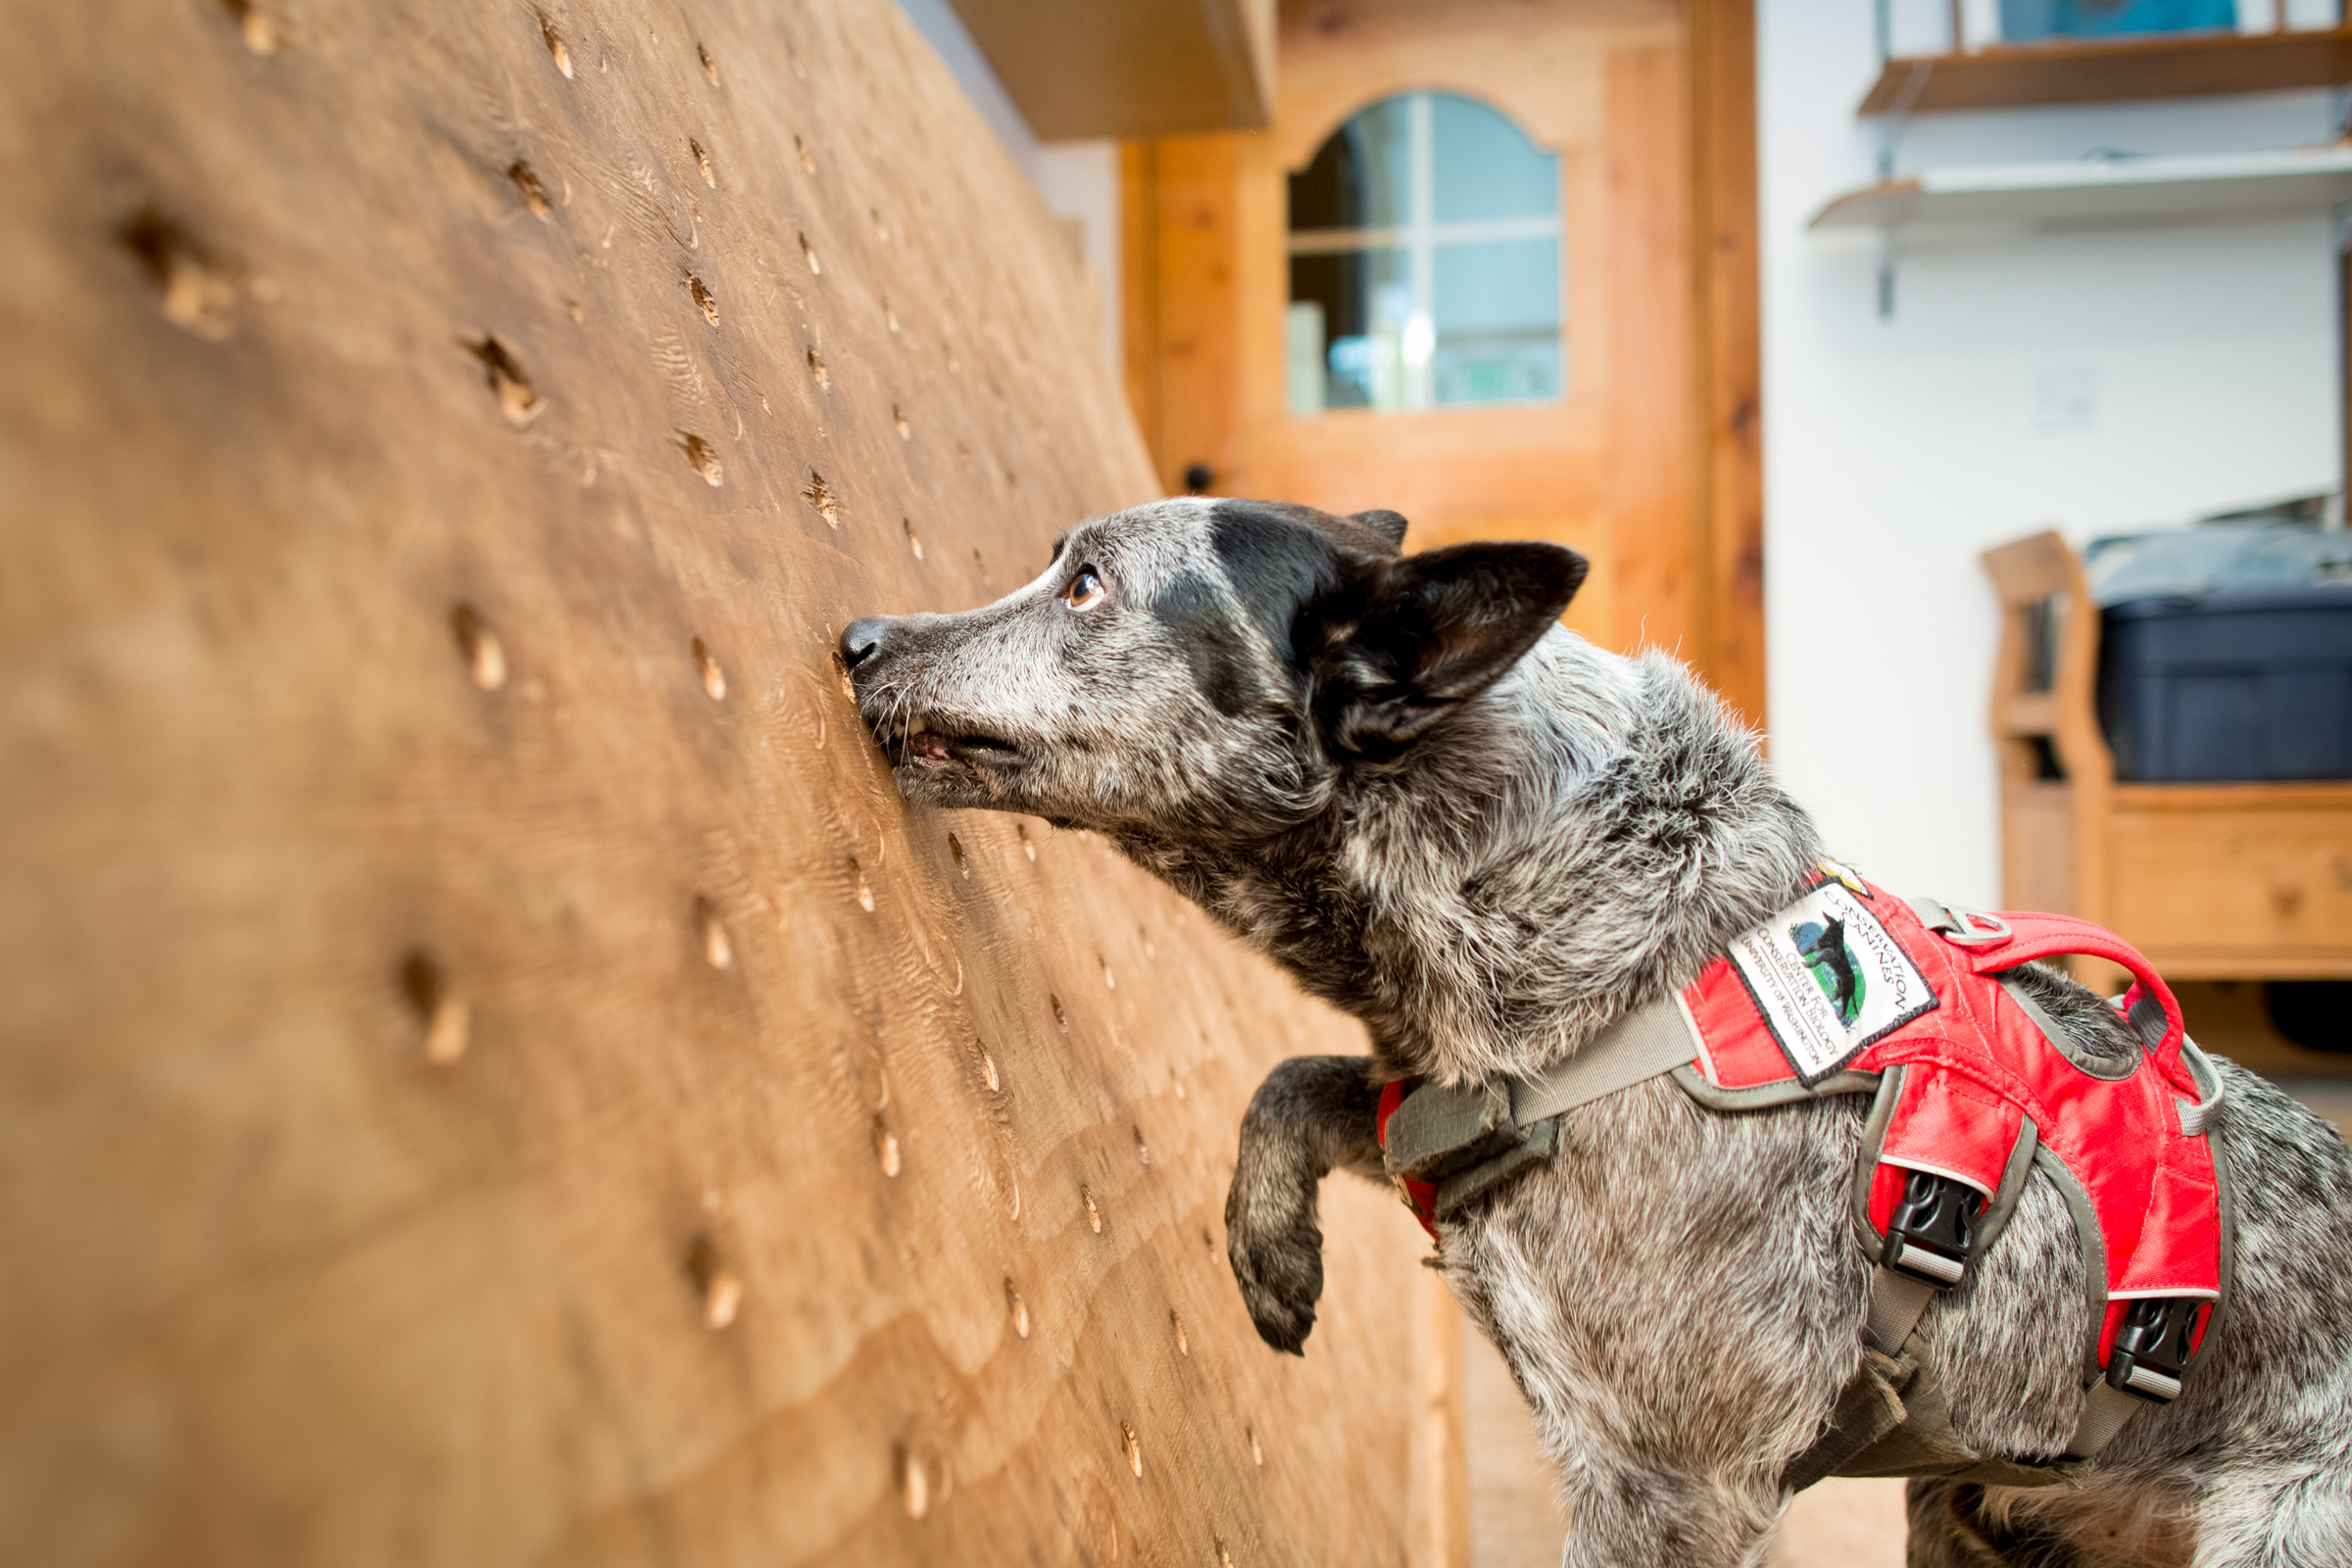 Dio, a rescued cattle dog, trains on scent detection at Conservation Canines, University of Washington's Center for Conservation Biology, Washington